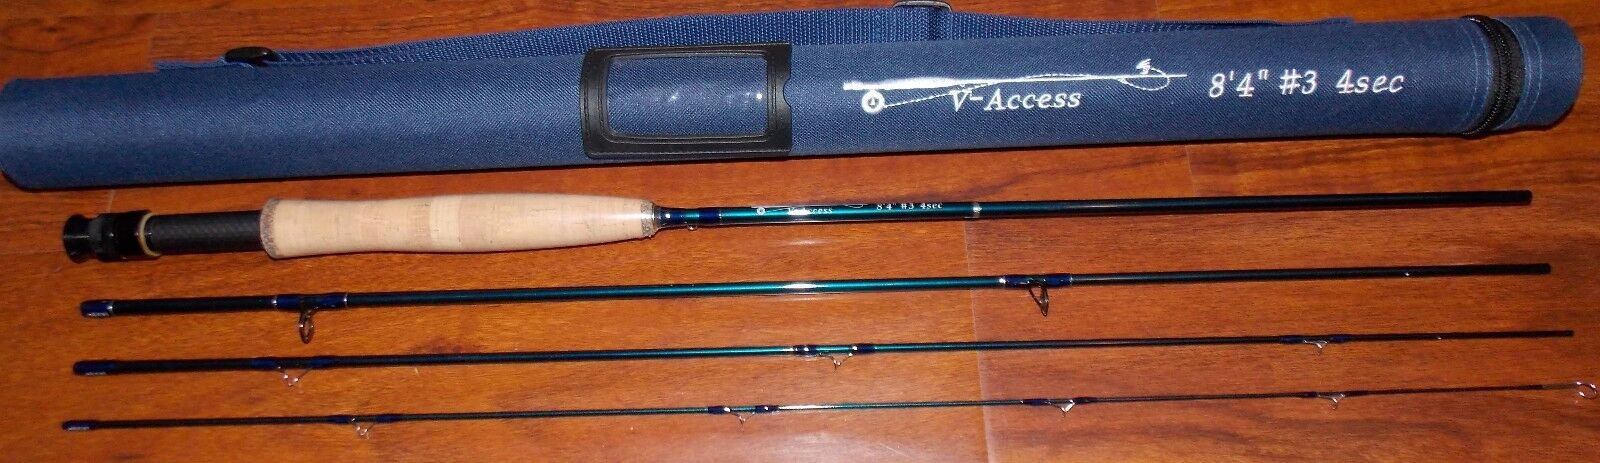 3WT V-Access  Fly Fishing Rod  8  4 Foot  4 Sec. with Tube  FREE 3 DAY SHIPPING